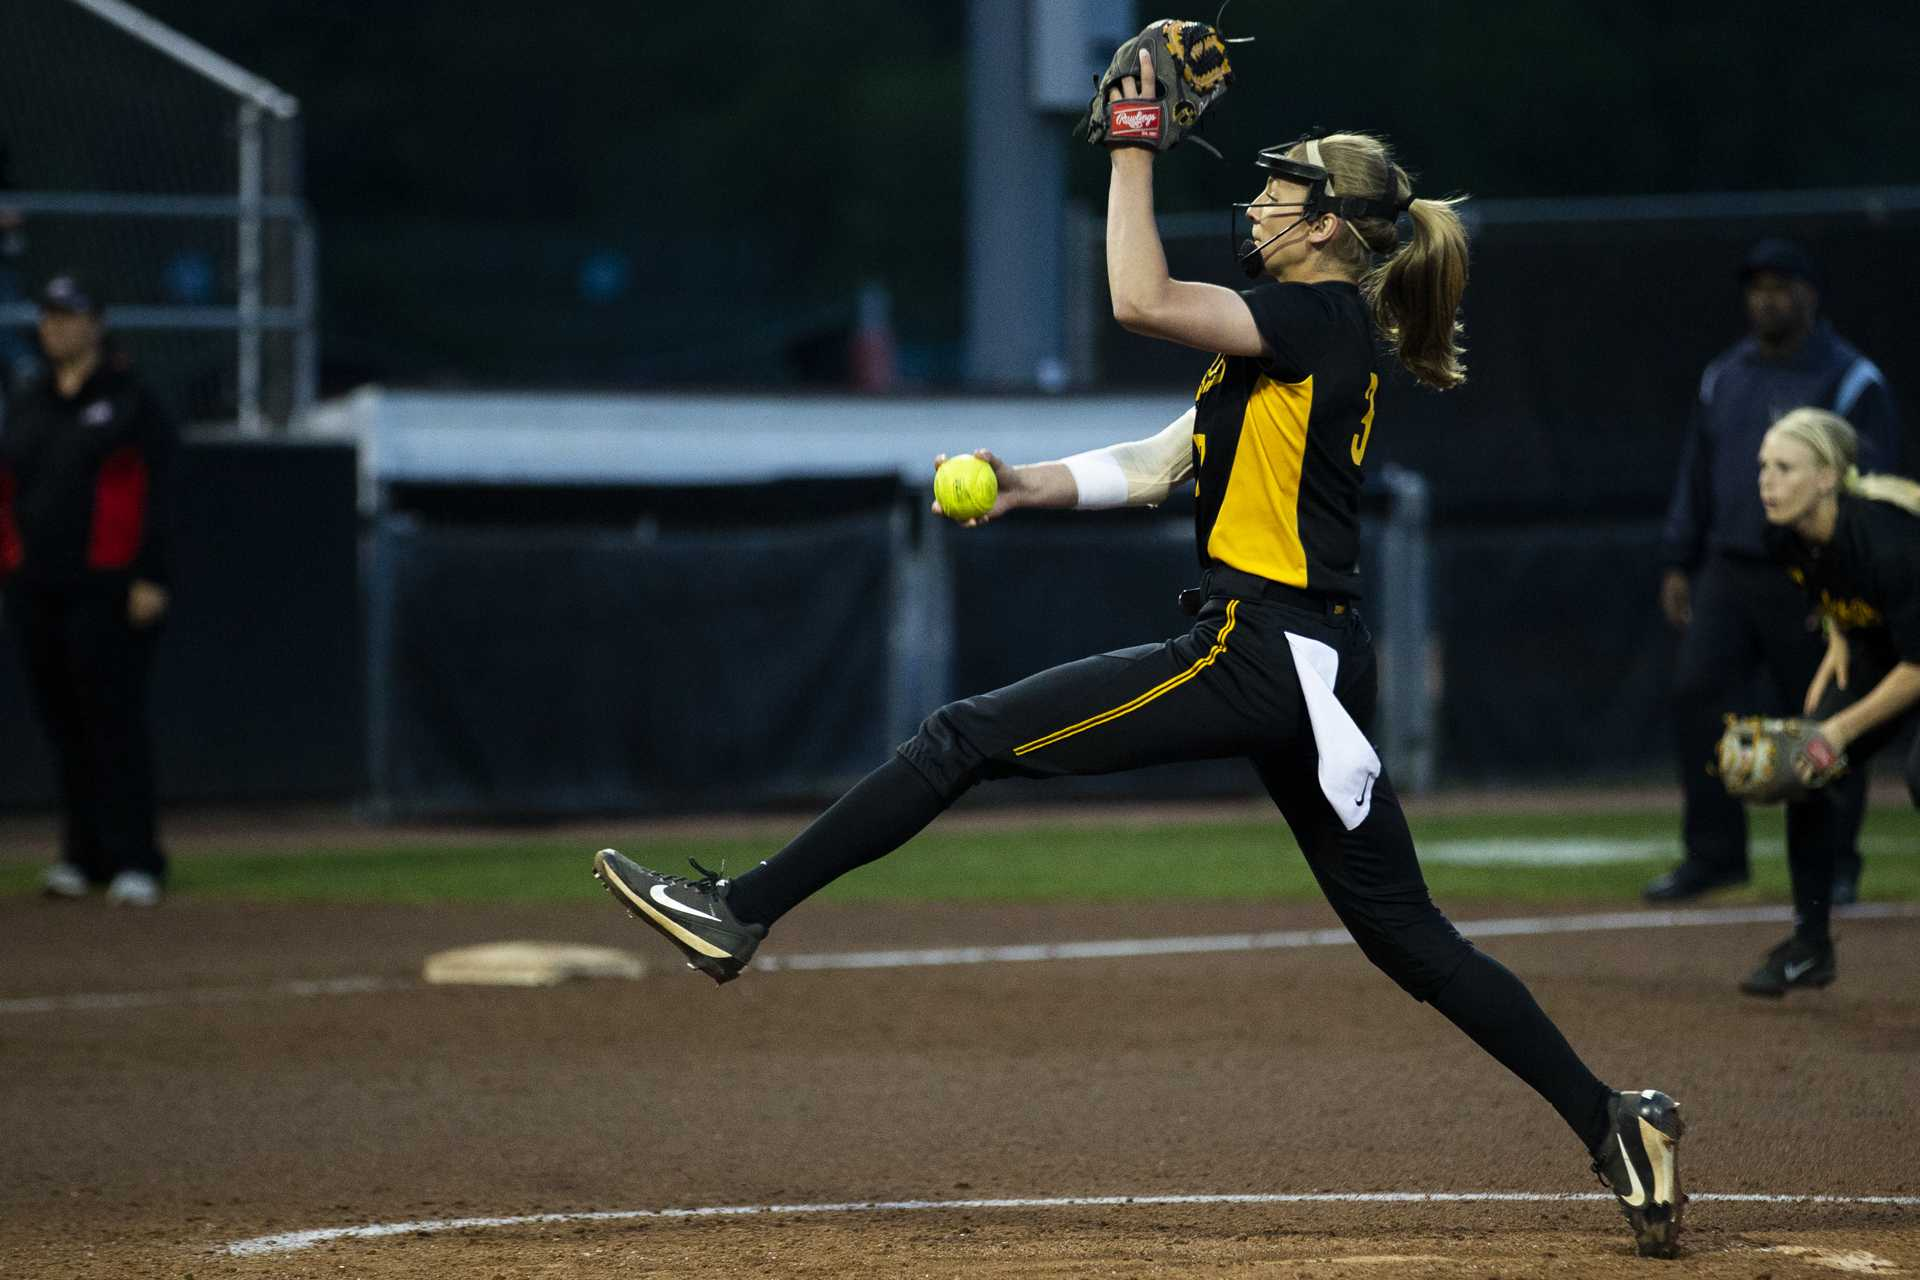 Iowa's Allison Doocy delivers a pitch during IowaÕs Big Ten tournament game against Ohio State at the Goodman Softball complex in Madison, WI. The Hawkeyes defeated the Buckeyes 5-1. (Nick Rohlman/The Daily Iowan)